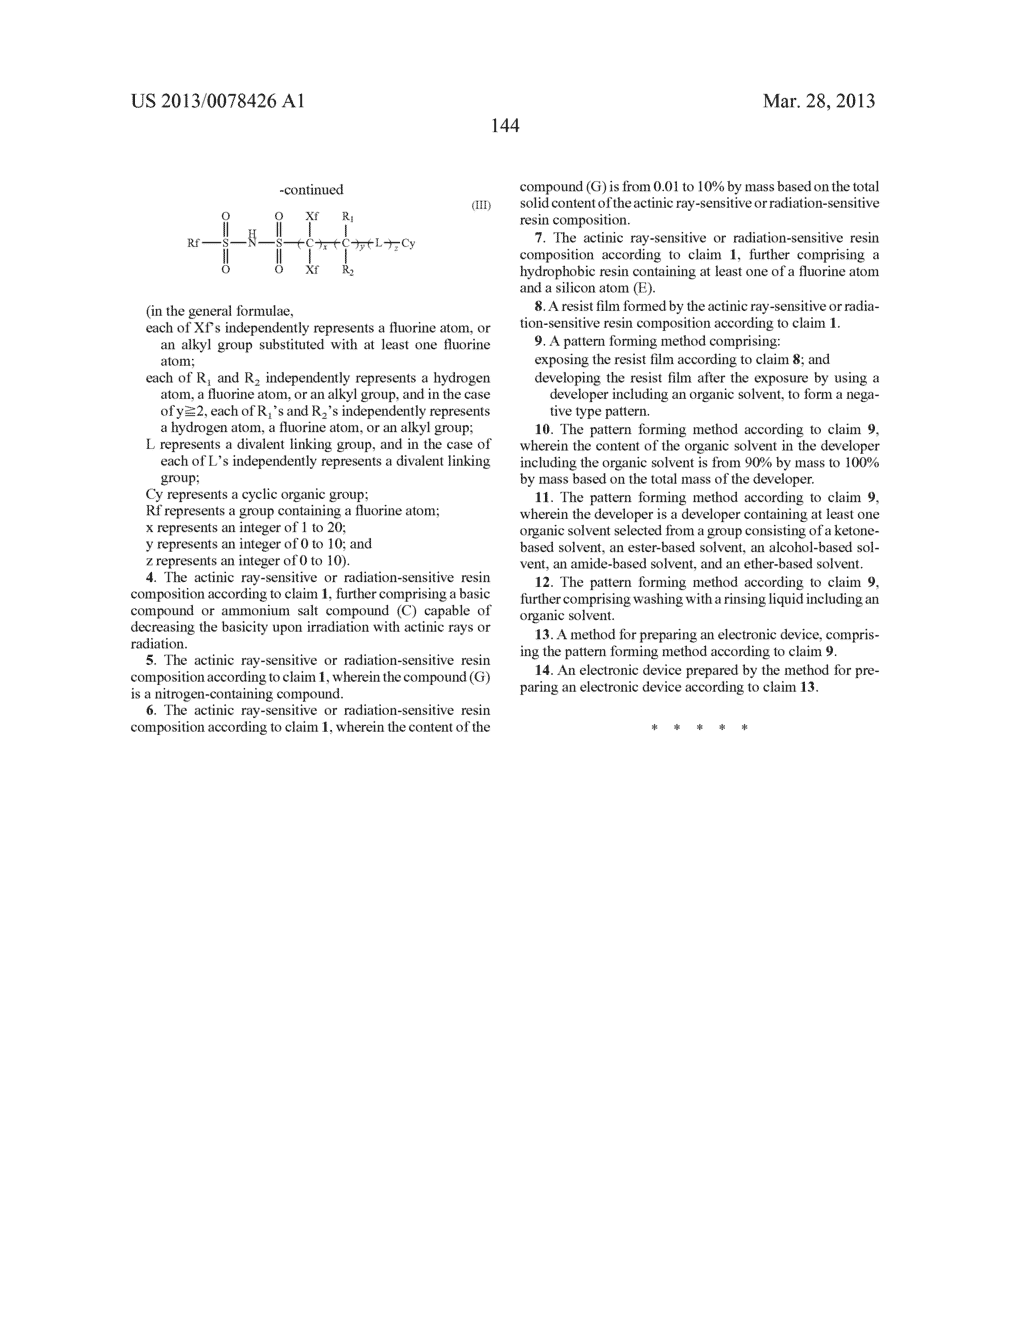 ACTINIC RAY-SENSITIVE OR RADIATION-SENSITIVE RESIN COMPOSITION, AND RESIST     FILM, PATTERN FORMING METHOD, METHOD FOR PREPARING ELECTRONIC DEVICE, AND     ELECTRONIC DEVICE, EACH USING THE SAME - diagram, schematic, and image 145